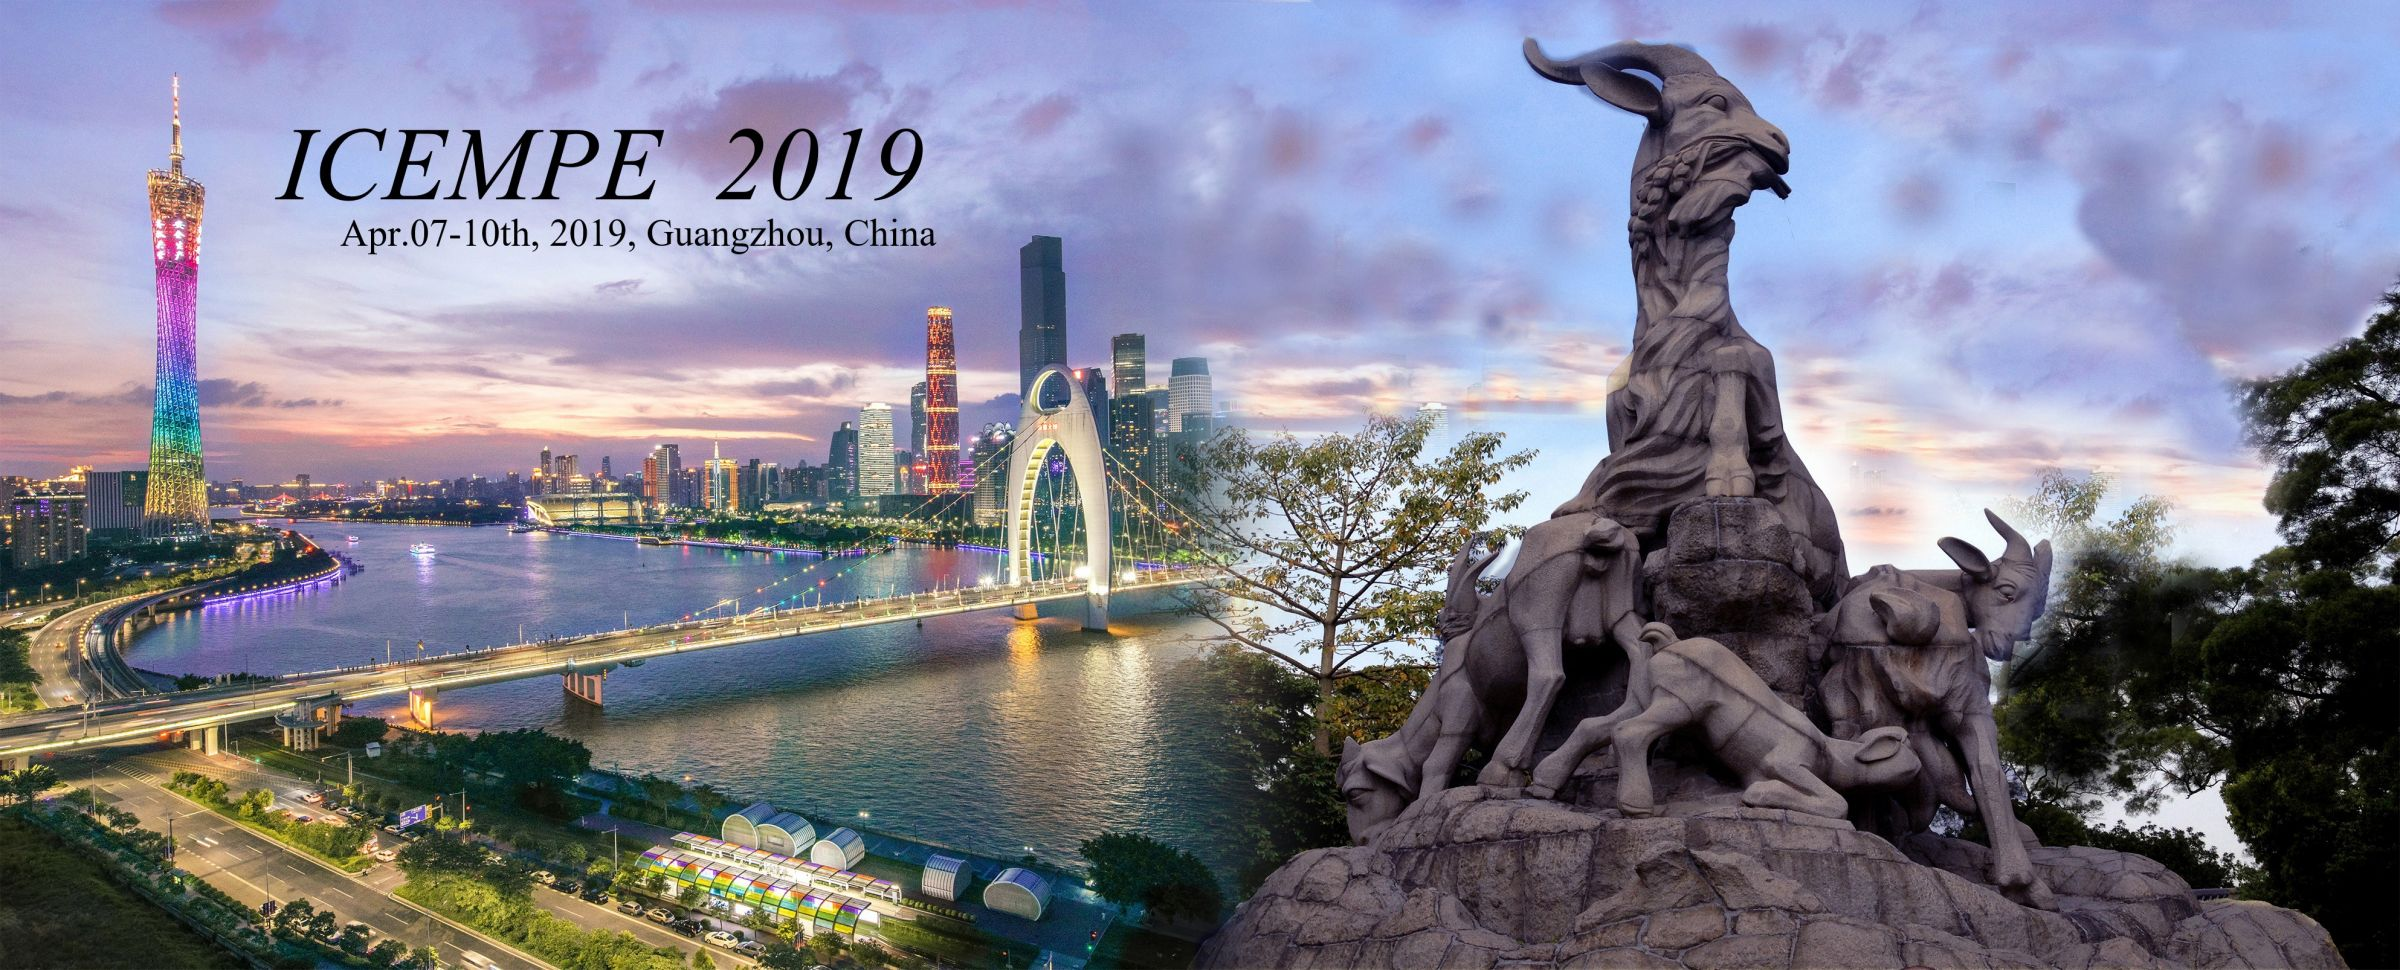 2019 2nd International Conference on Electrical Materials and Power Equipment